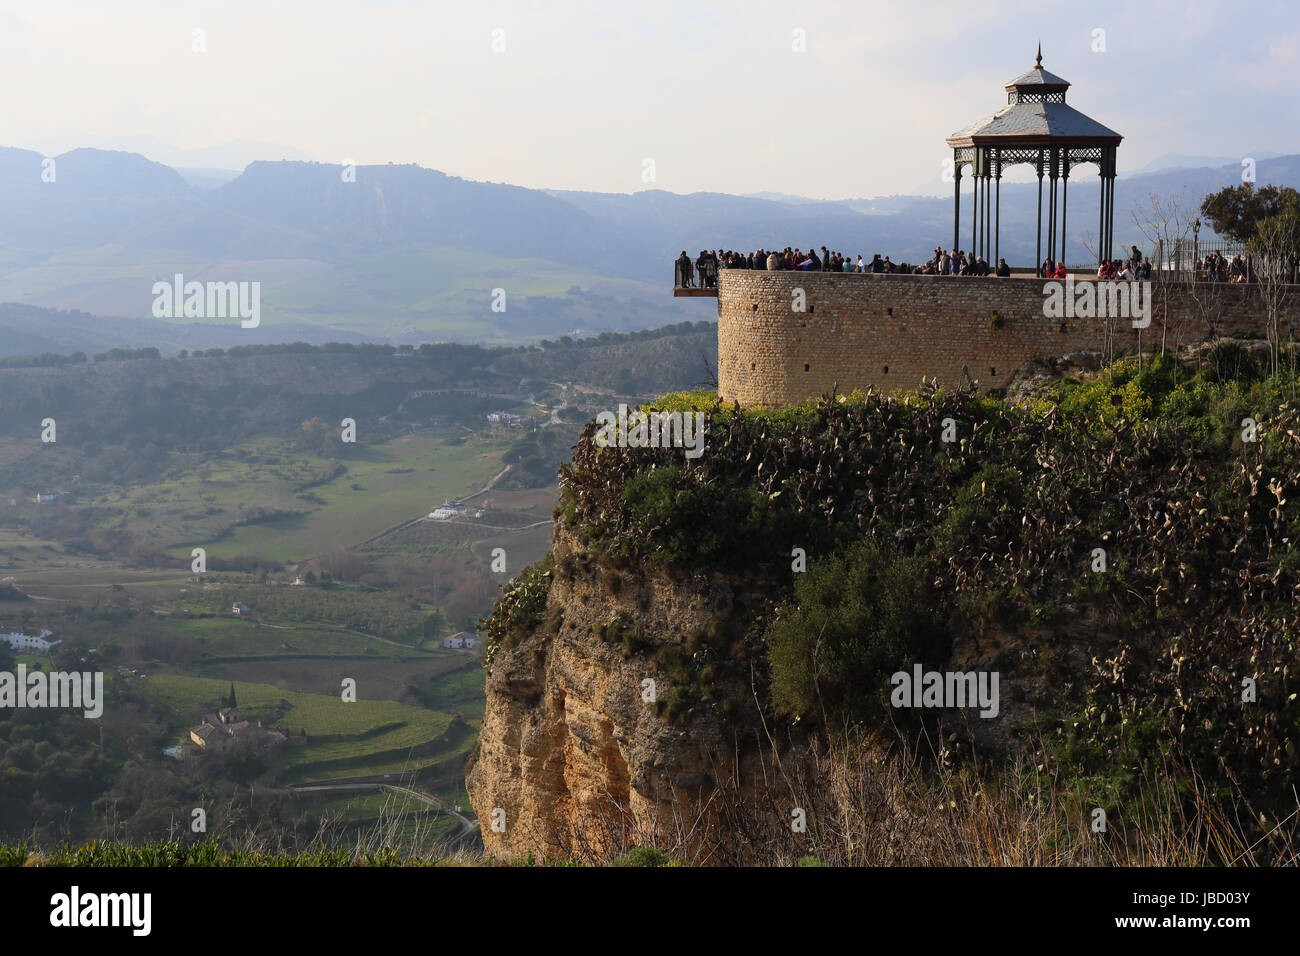 tourists-flocking-at-the-viewpoint-in-al